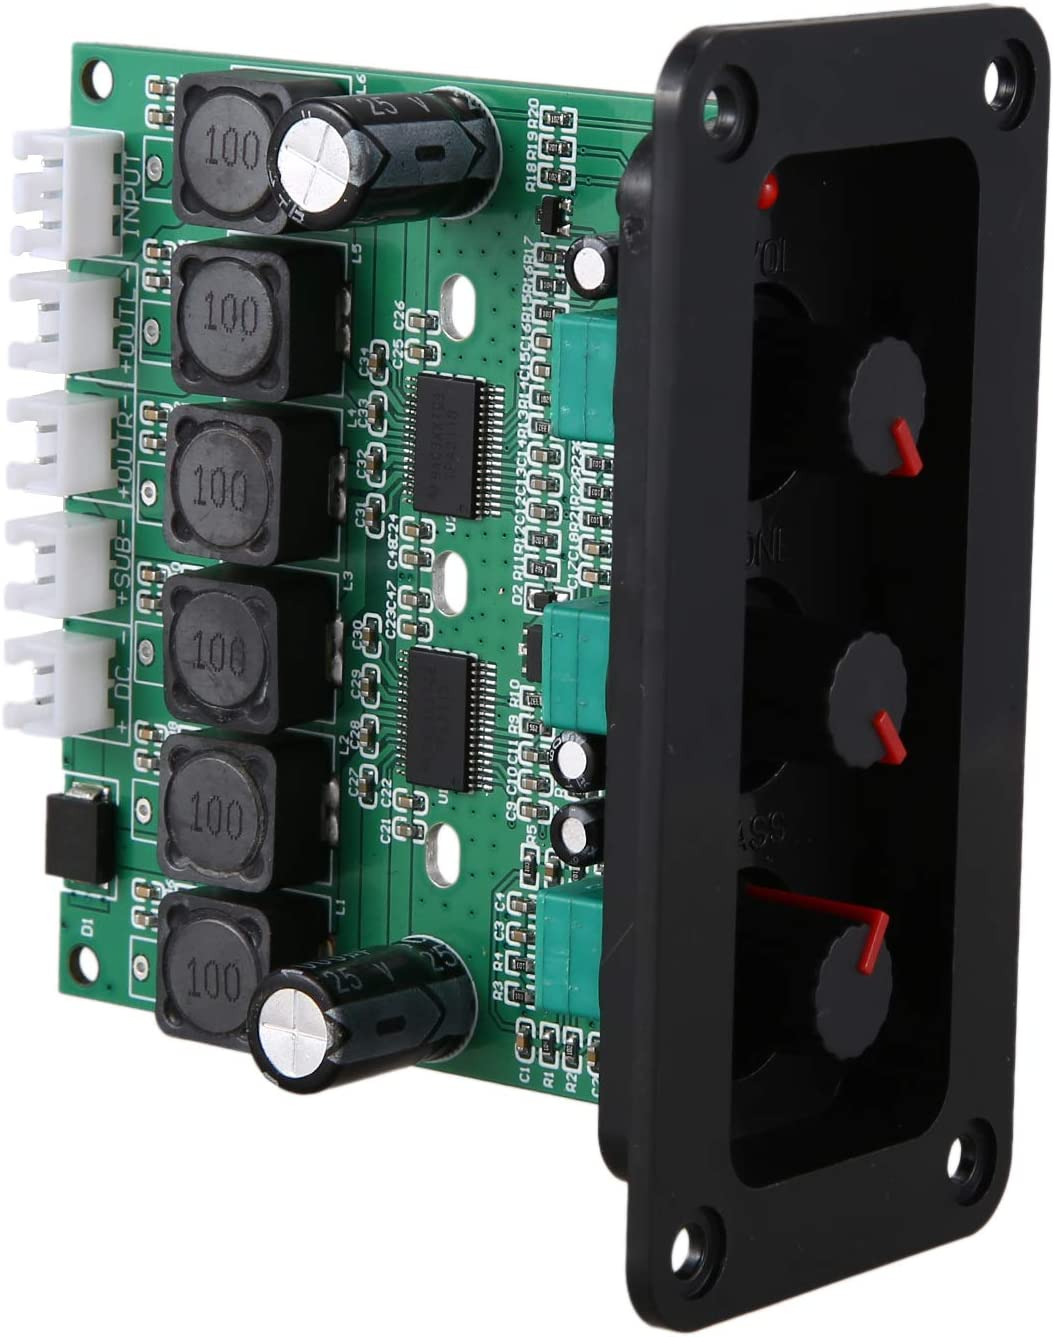 Gaoominy TPA3118DD2 Subwoofer Amplifier Board 30Wx2+60W HiFi High Power TPA3118D 2.1 Digital Audio Amplifiers with Panel